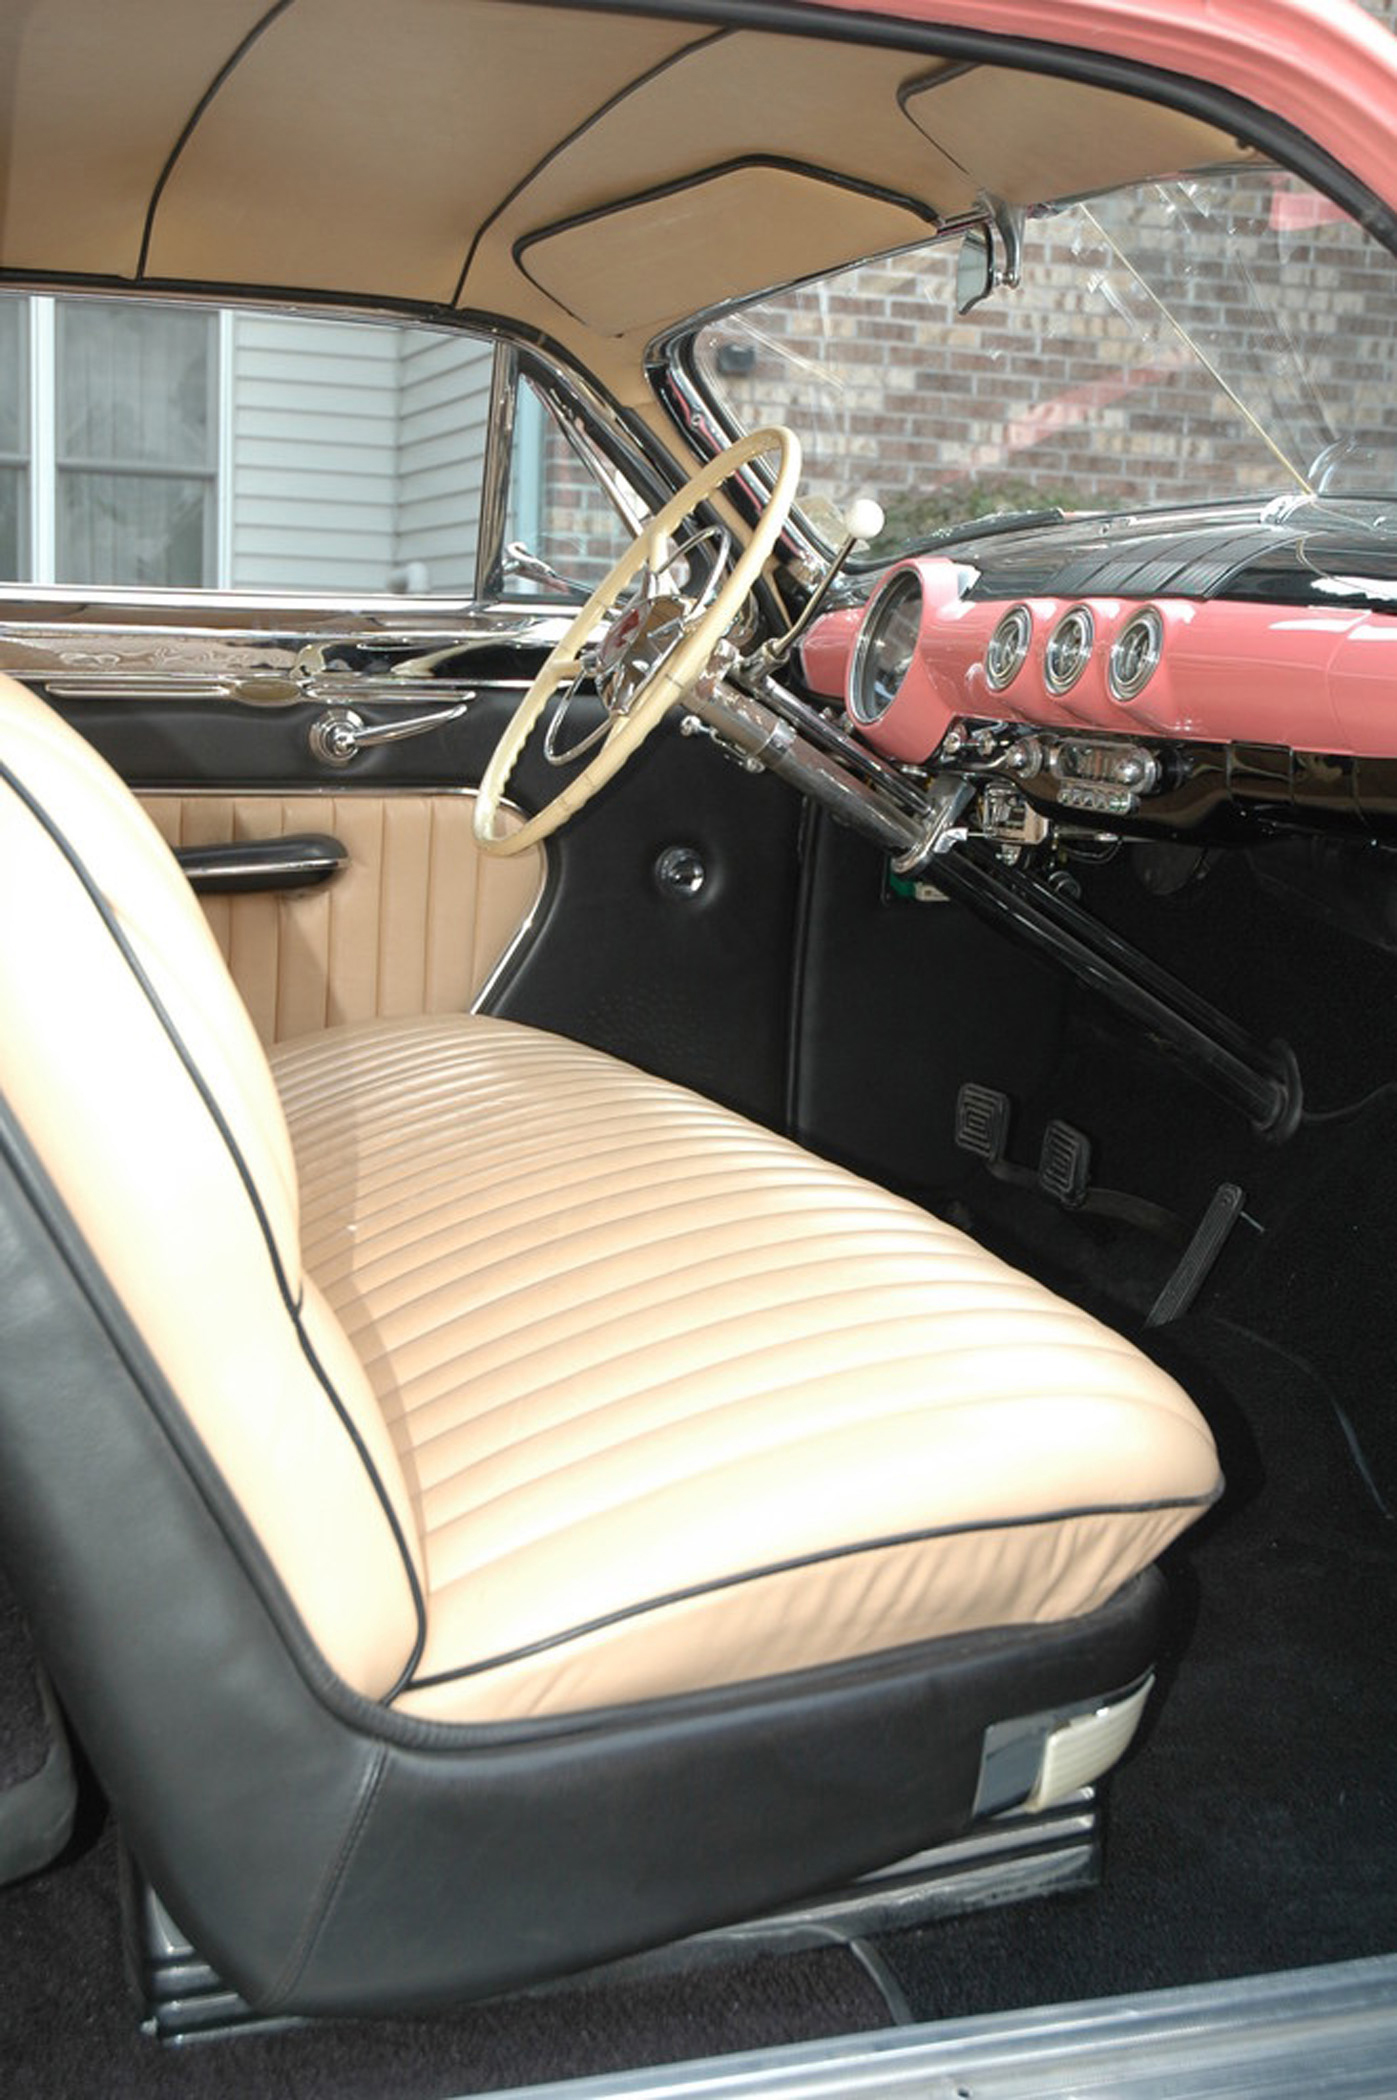 Oozing with classic charm, the interior is filled with just enough tan and black leather. John filled the dash to a triple-treat of Stewart-Warner gauges as well as a vintage 1951 Ford Crestliner steering wheel. For those long rides, a 1954 Lincoln bench with four-way power was called into service while all the trimming was handled by Rod Akey.